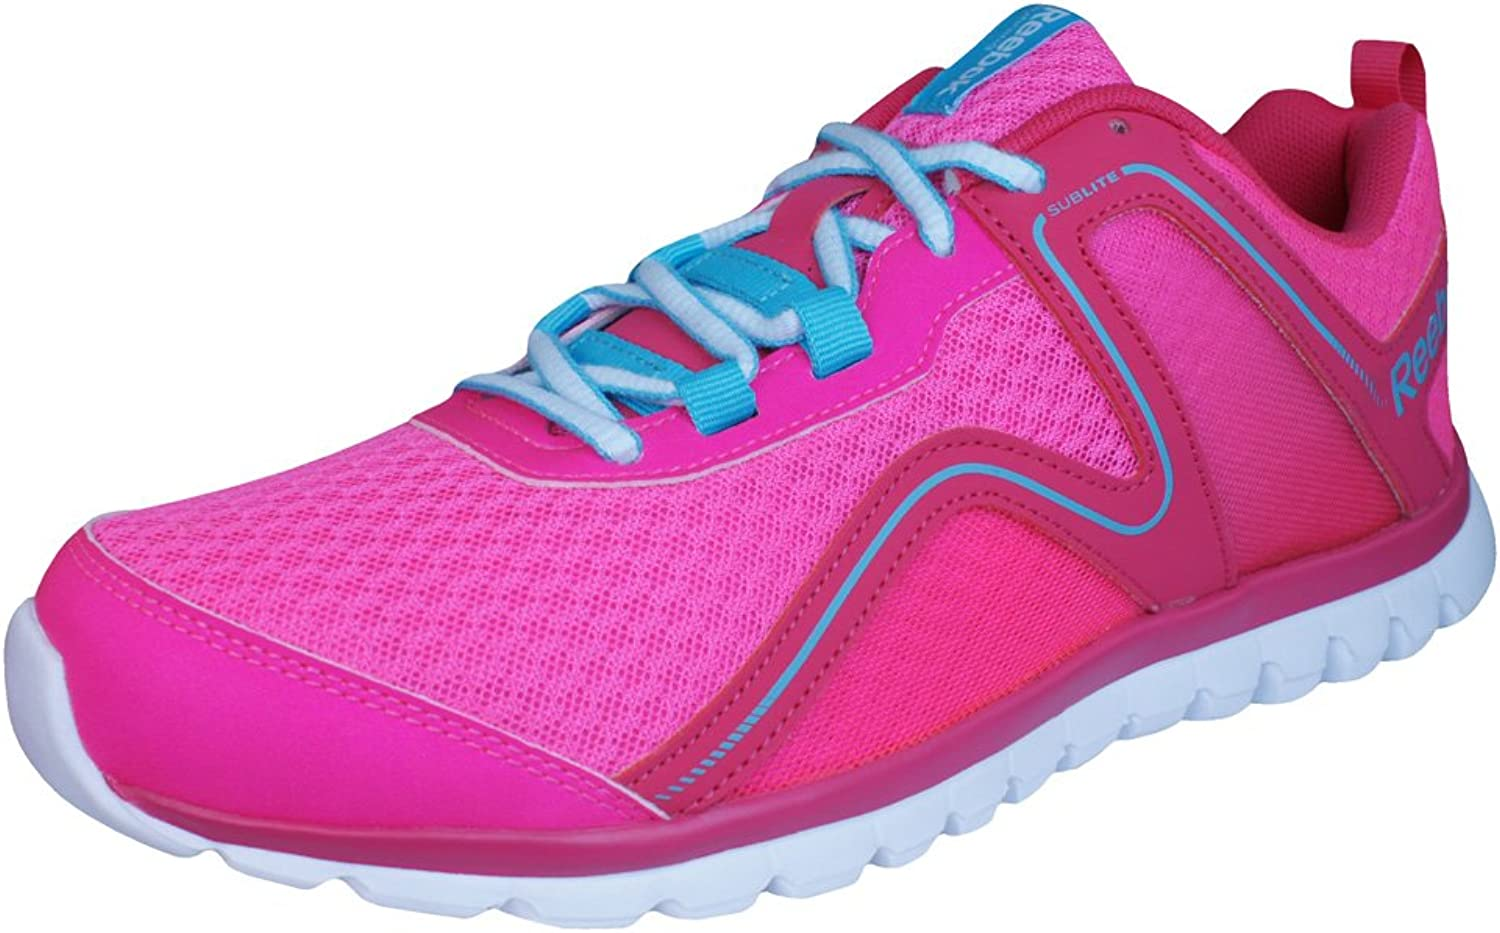 Reebok Sublite Escape 2.0 Womens Running Sneakers